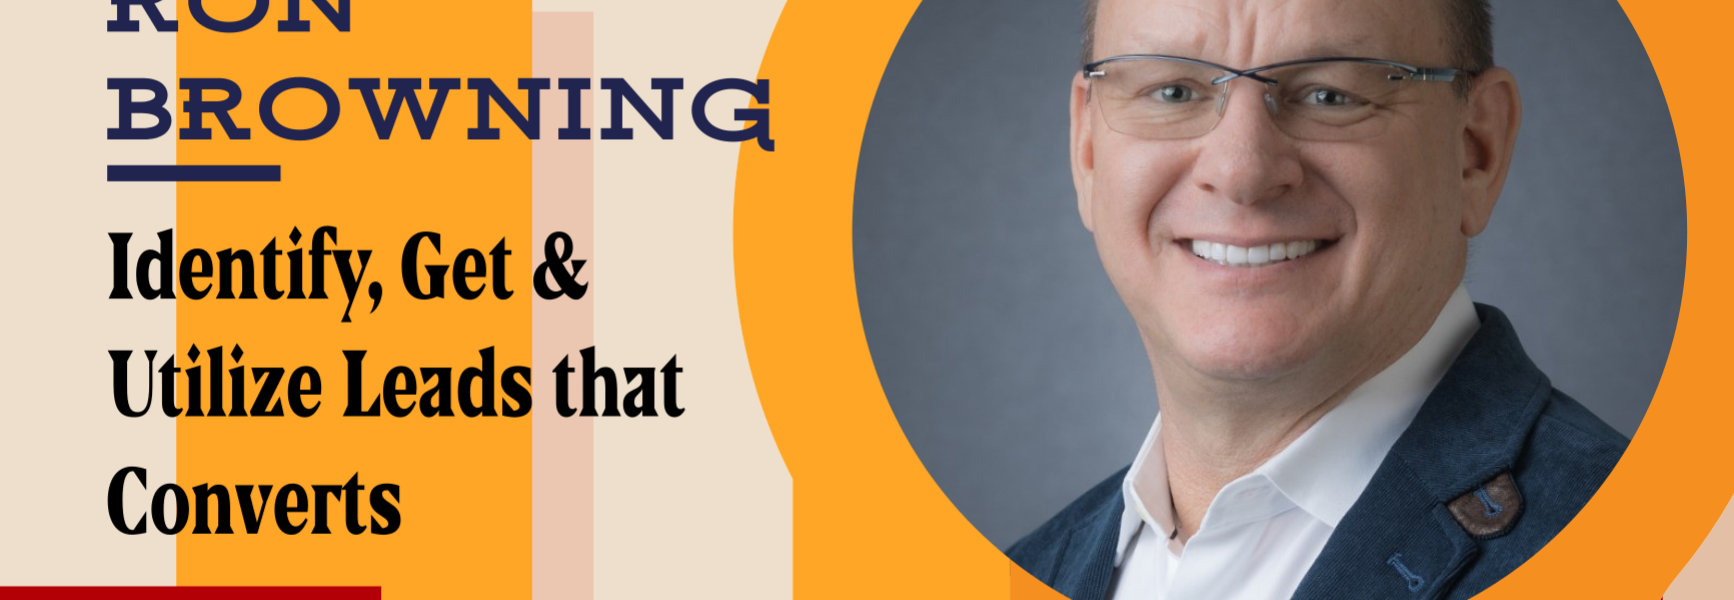 Business Success: Identify, Get & Utilize Leads that Converts with Ron Browning